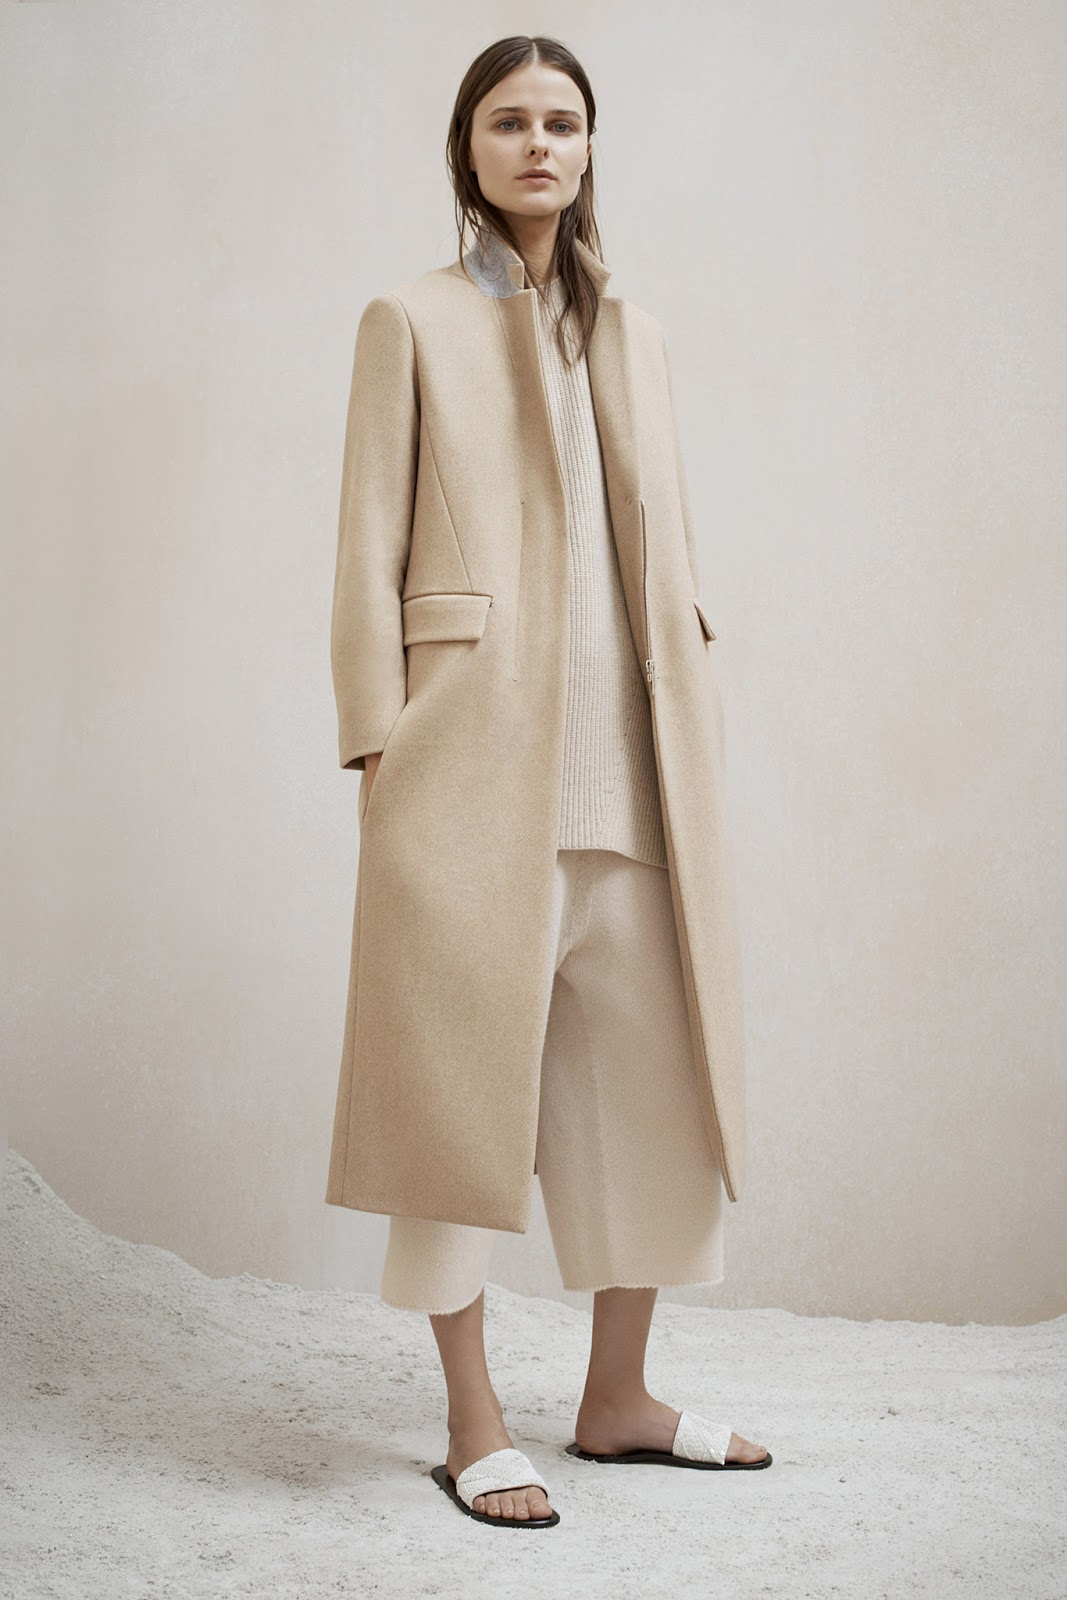 via fashioned by love | The Row Pre-Fall 2015 | camel trends | 2015